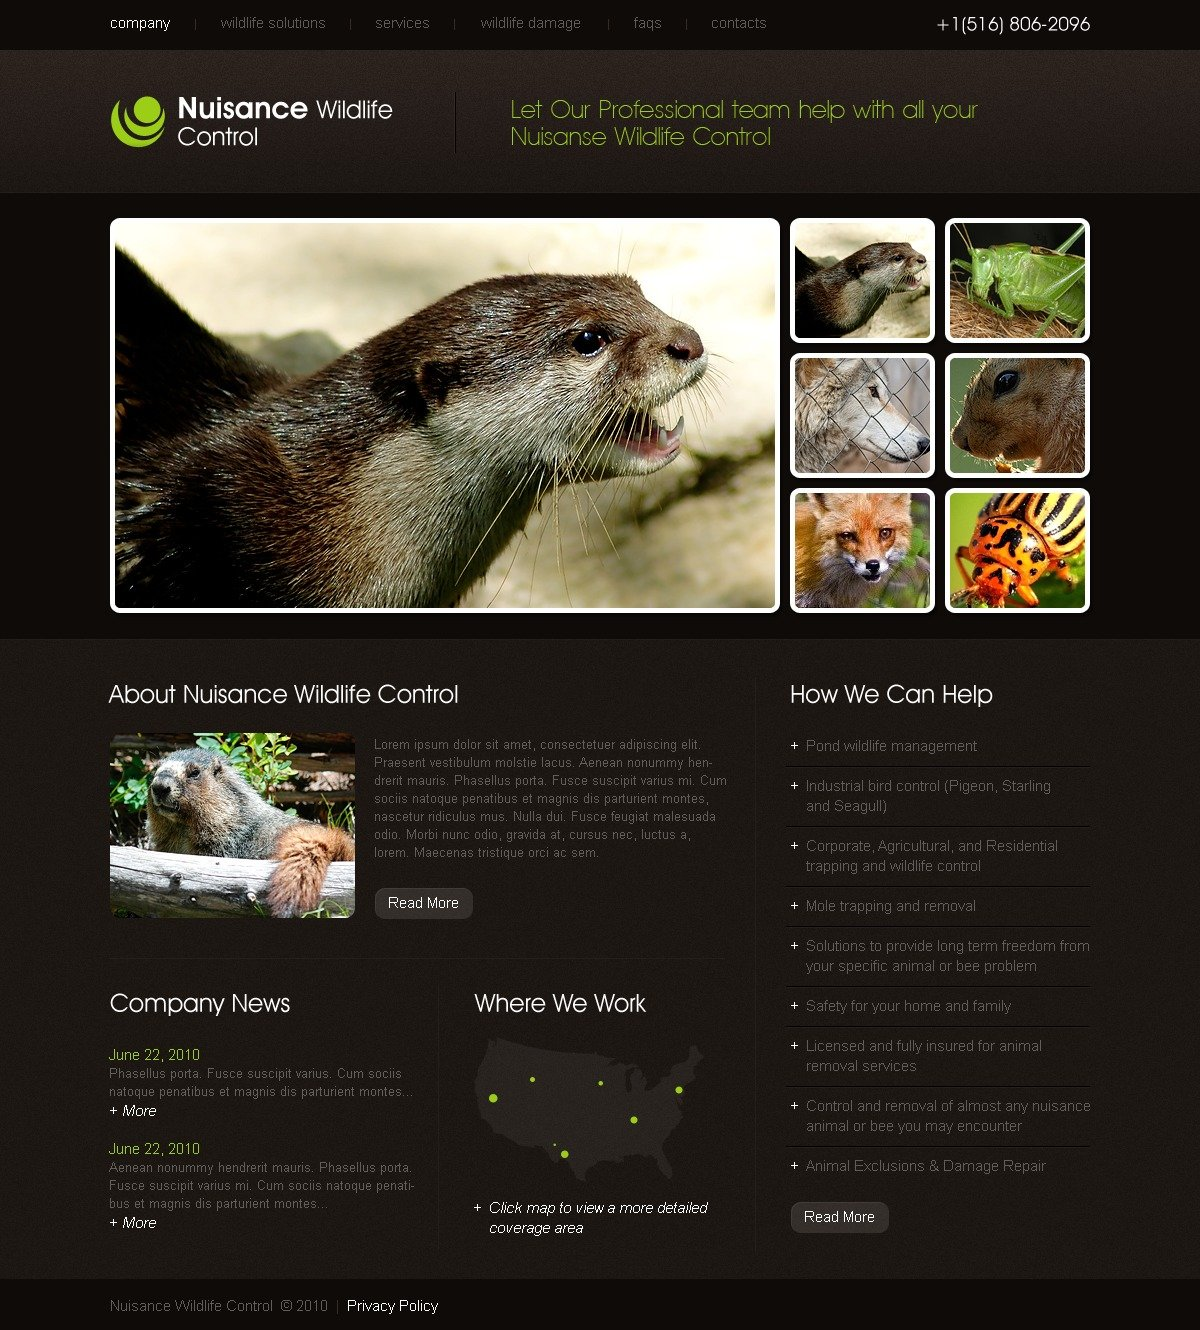 The Nuisance Wildlife PSD Design 54424, one of the best PSD templates of its kind (animals & pets, flash 8, wide), also known as nuisance wildlife PSD template, control PSD template, wild PSD template, life PSD template, animals PSD template, fund PSD template, life PSD template, nature PSD template, wildlife PSD template, photos PSD template, gallery PSD template, events PSD template, archive PSD template, links PSD template, individuality PSD template, guestbook PSD template, journal PSD template, visitors PSD template, opinion PSD template, discussion blogroll PSD template, nature PSD template, environment PSD template, ecology PSD template, roe PSD template, deer PSD template, tiger PSD template, stork PSD template, pigeon PSD template, dolphin PSD template, lion PSD template, lynx PSD template, bobcat and related with nuisance wildlife, control, wild, life, animals, fund, life, nature, wildlife, photos, gallery, events, archive, links, individuality, guestbook, journal, visitors, opinion, discussion blogroll, nature, environment, ecology, roe, deer, tiger, stork, pigeon, dolphin, lion, lynx, bobcat, etc.